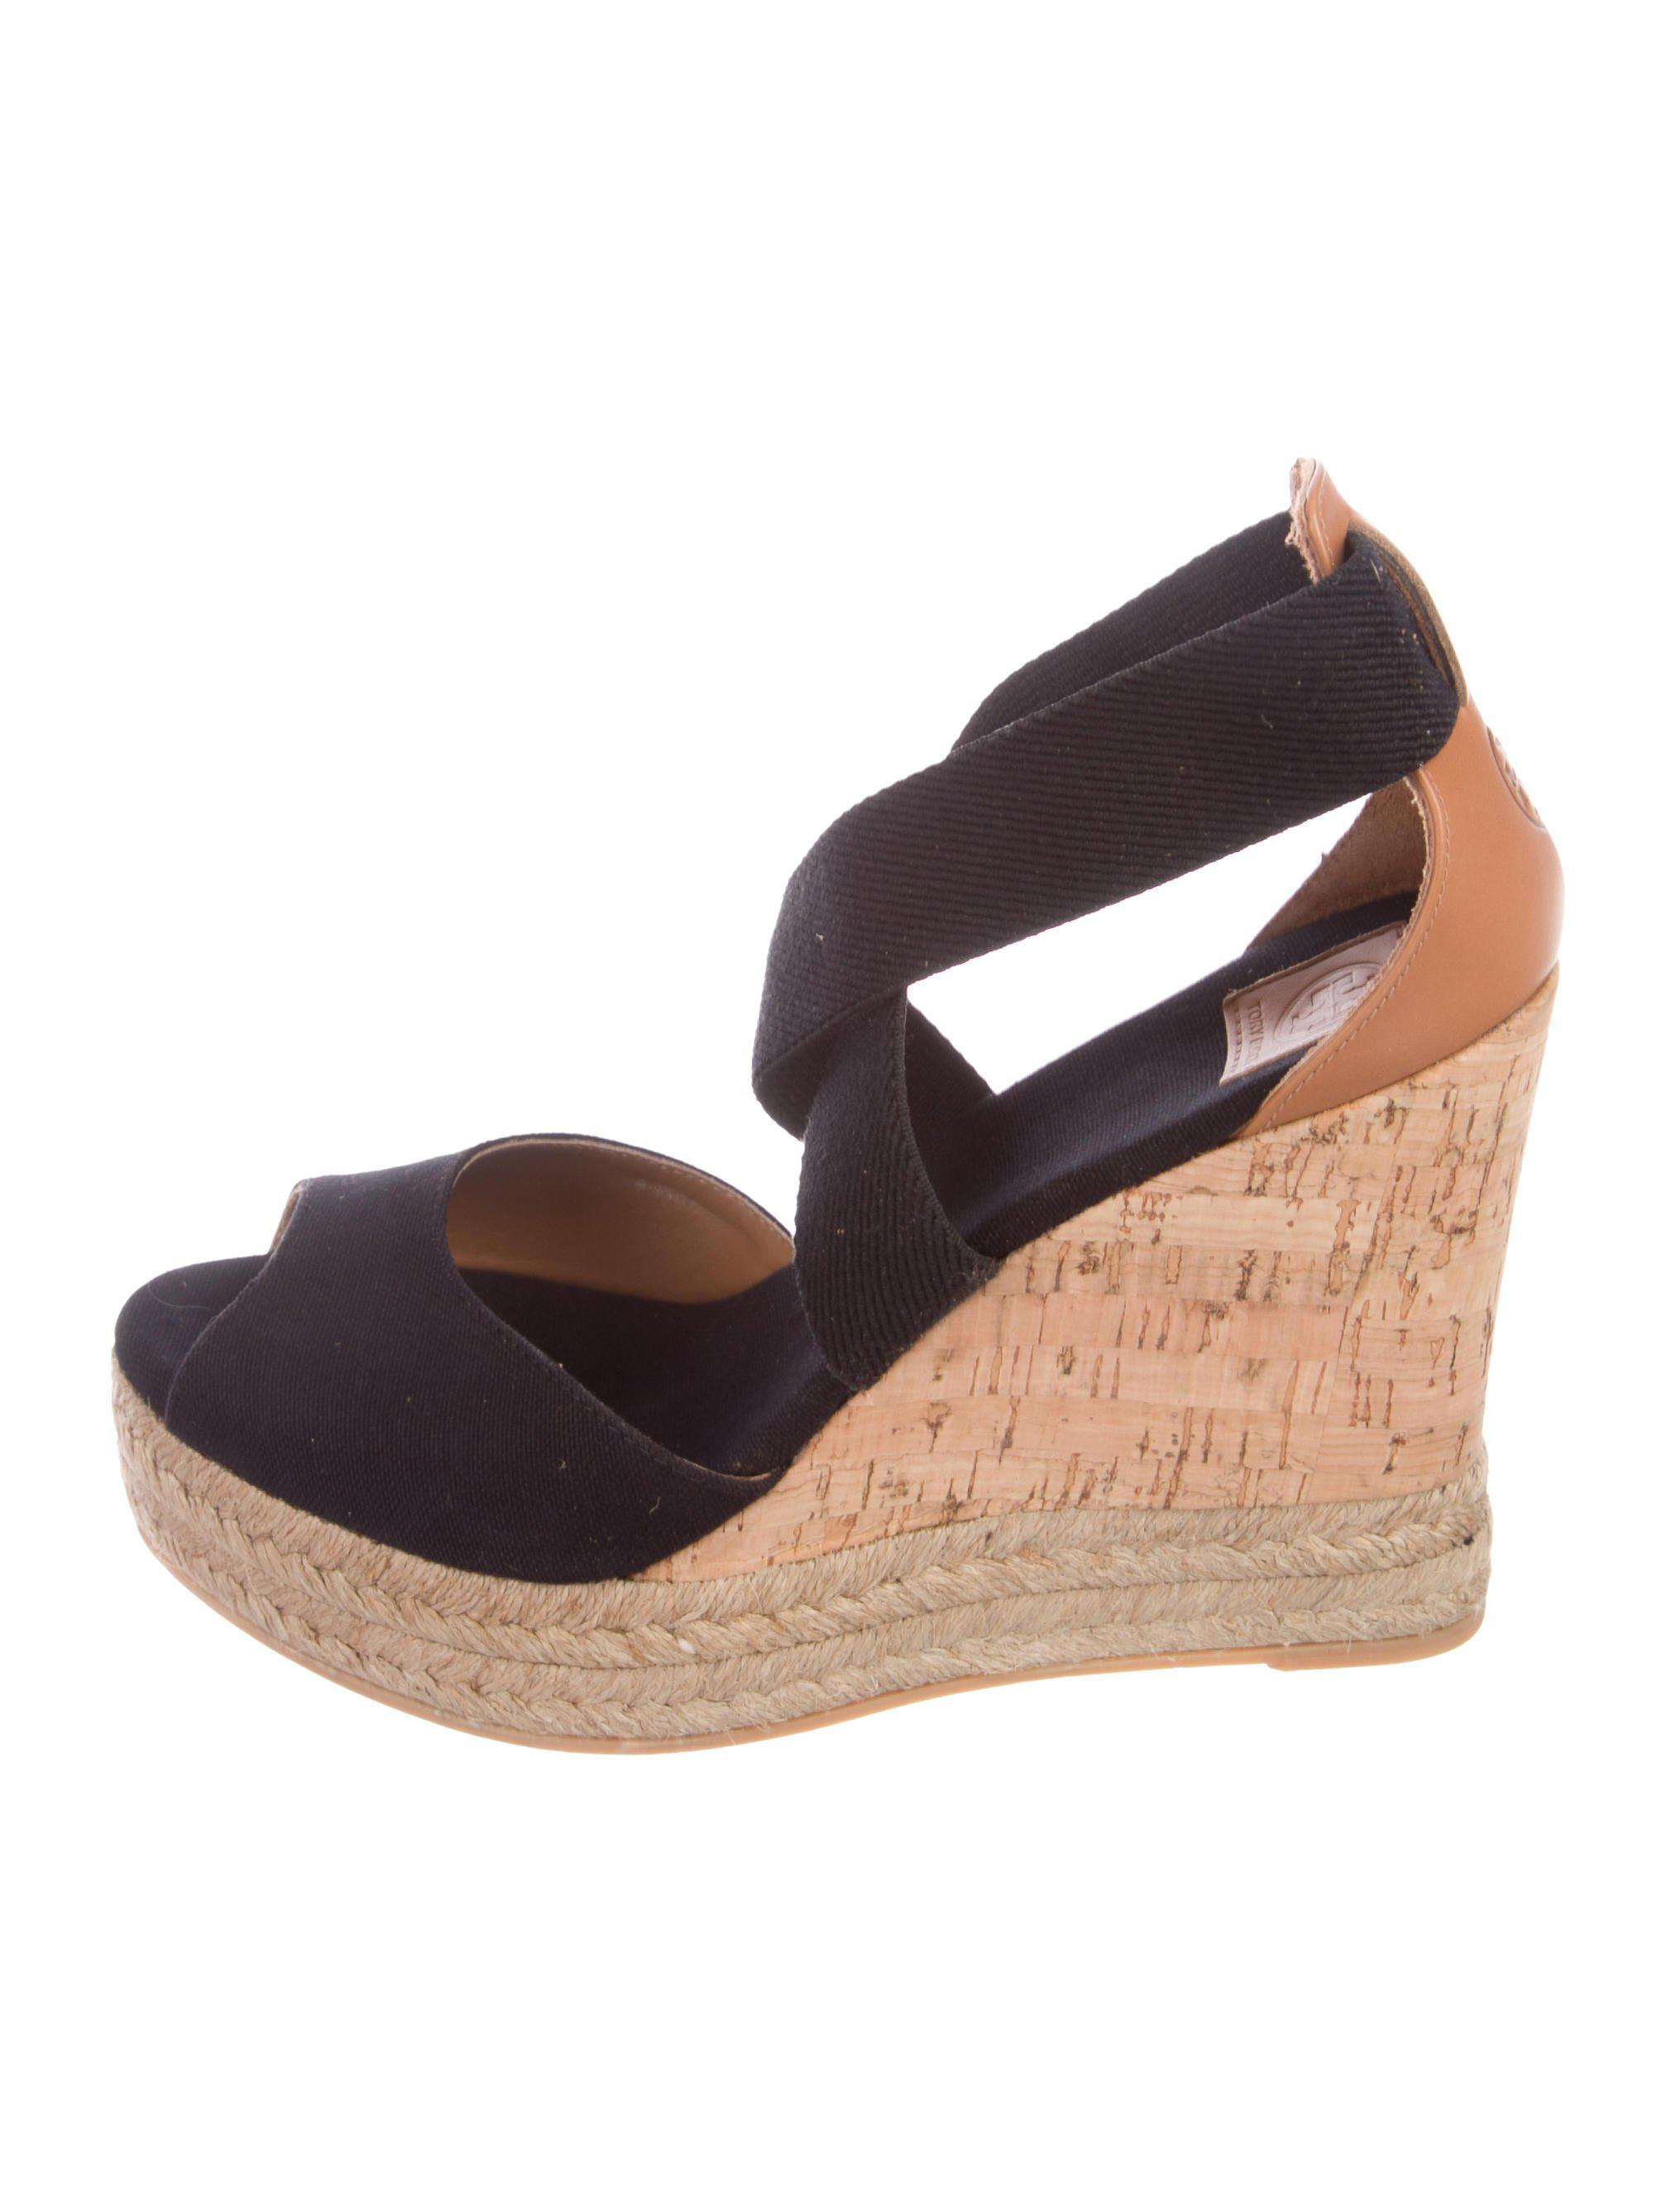 d5ca12306 Lyst - Tory Burch Crossover Espadrille Wedges Black in Natural